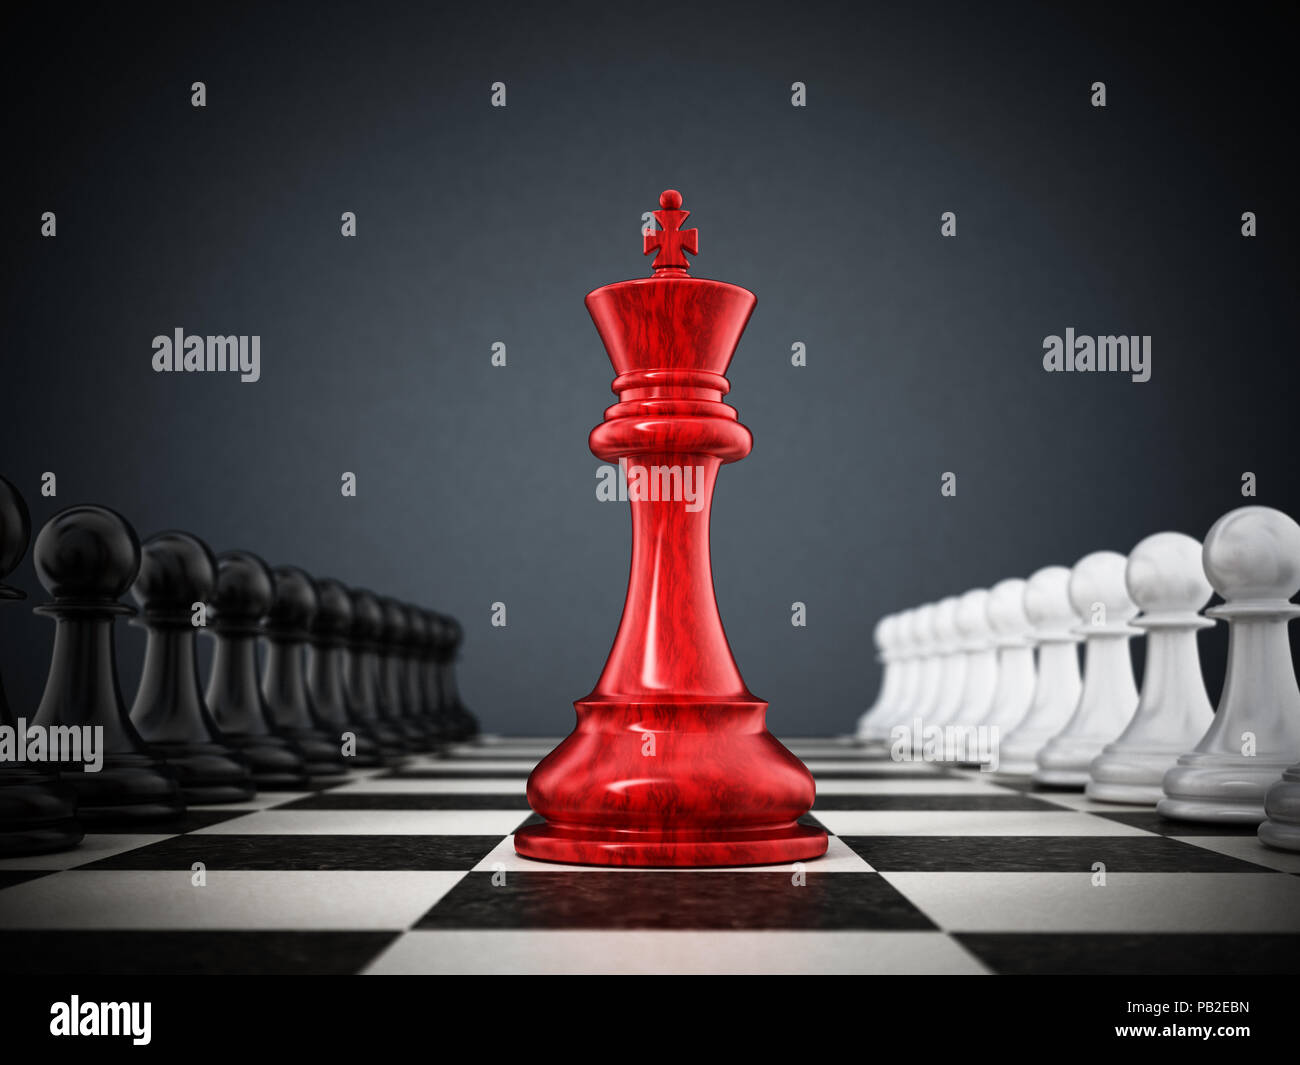 Red chess king standing between white and black pawns. 3D illustration. - Stock Image